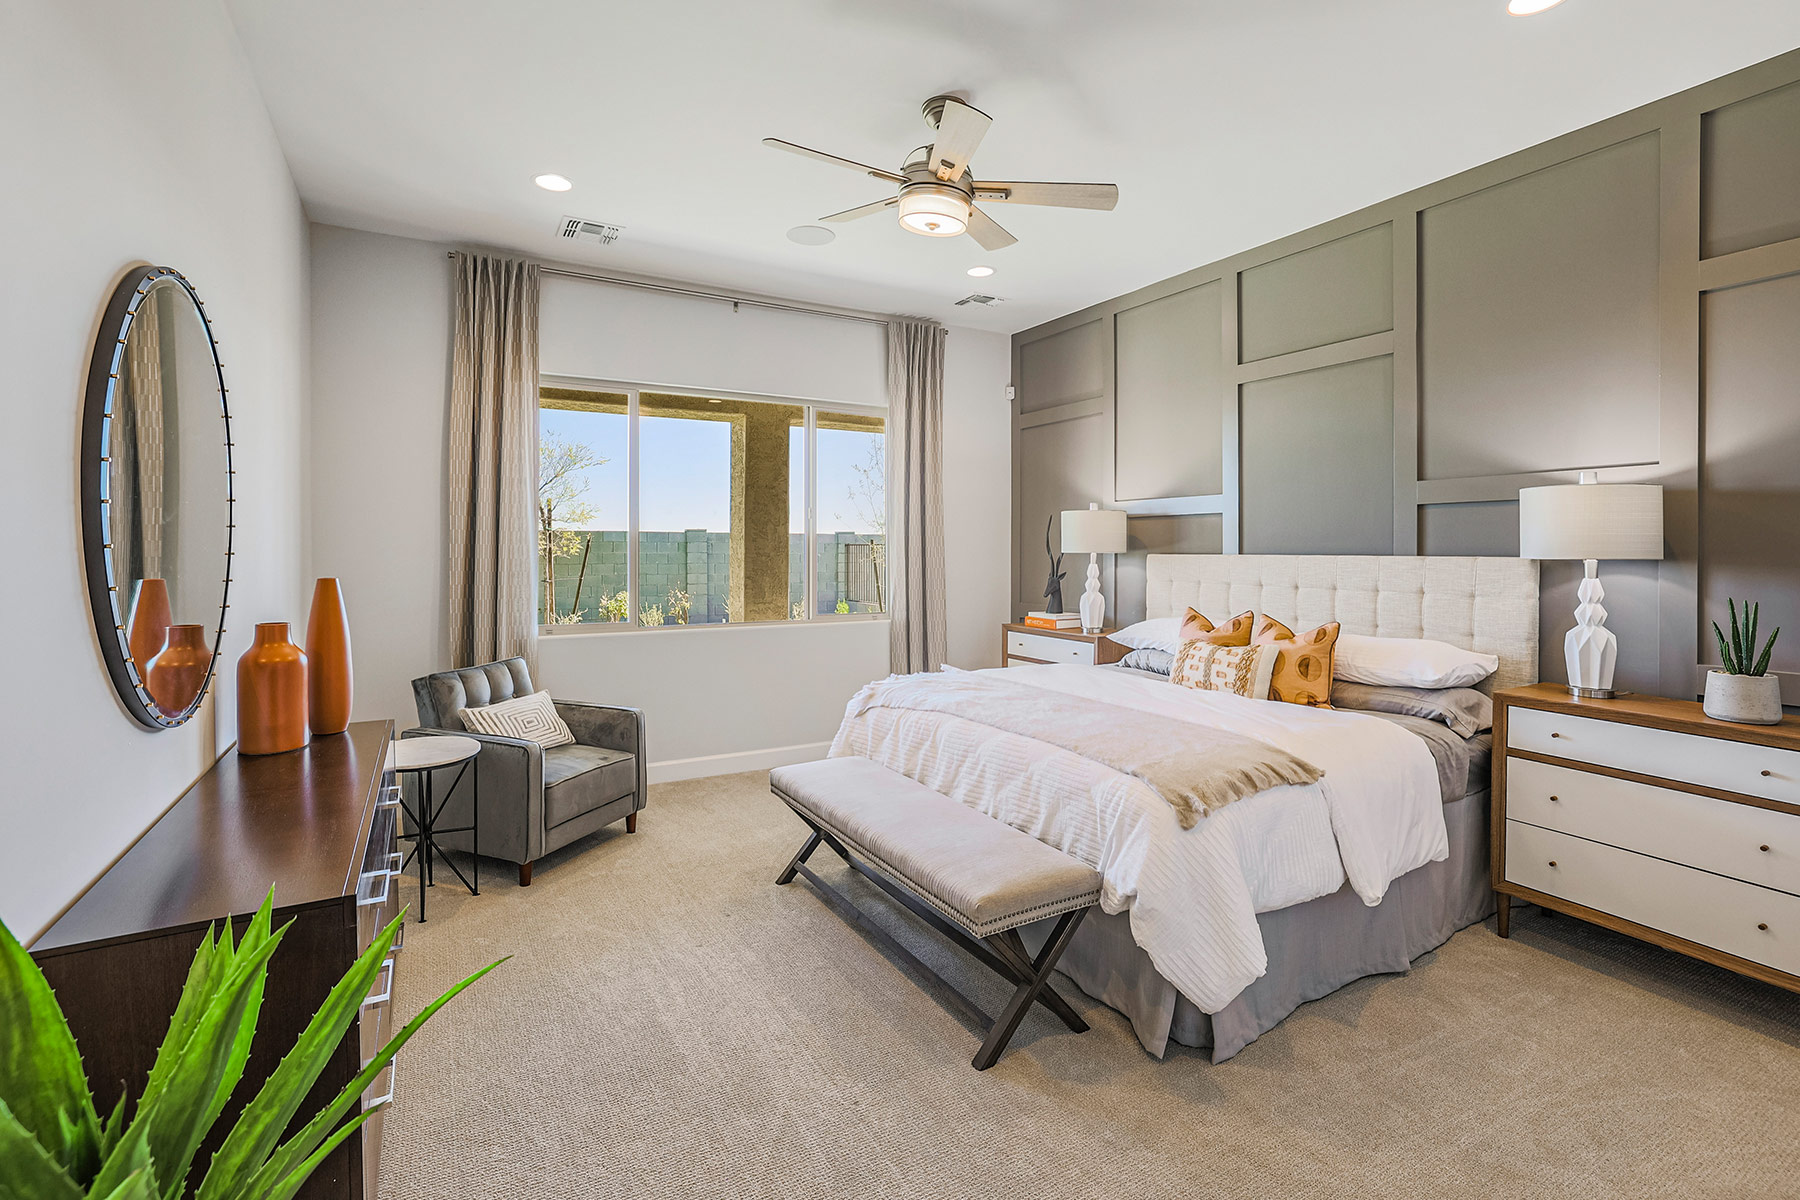 Castleton Plan Bedroom at Azure Canyon in Litchfield Park Arizona by Mattamy Homes